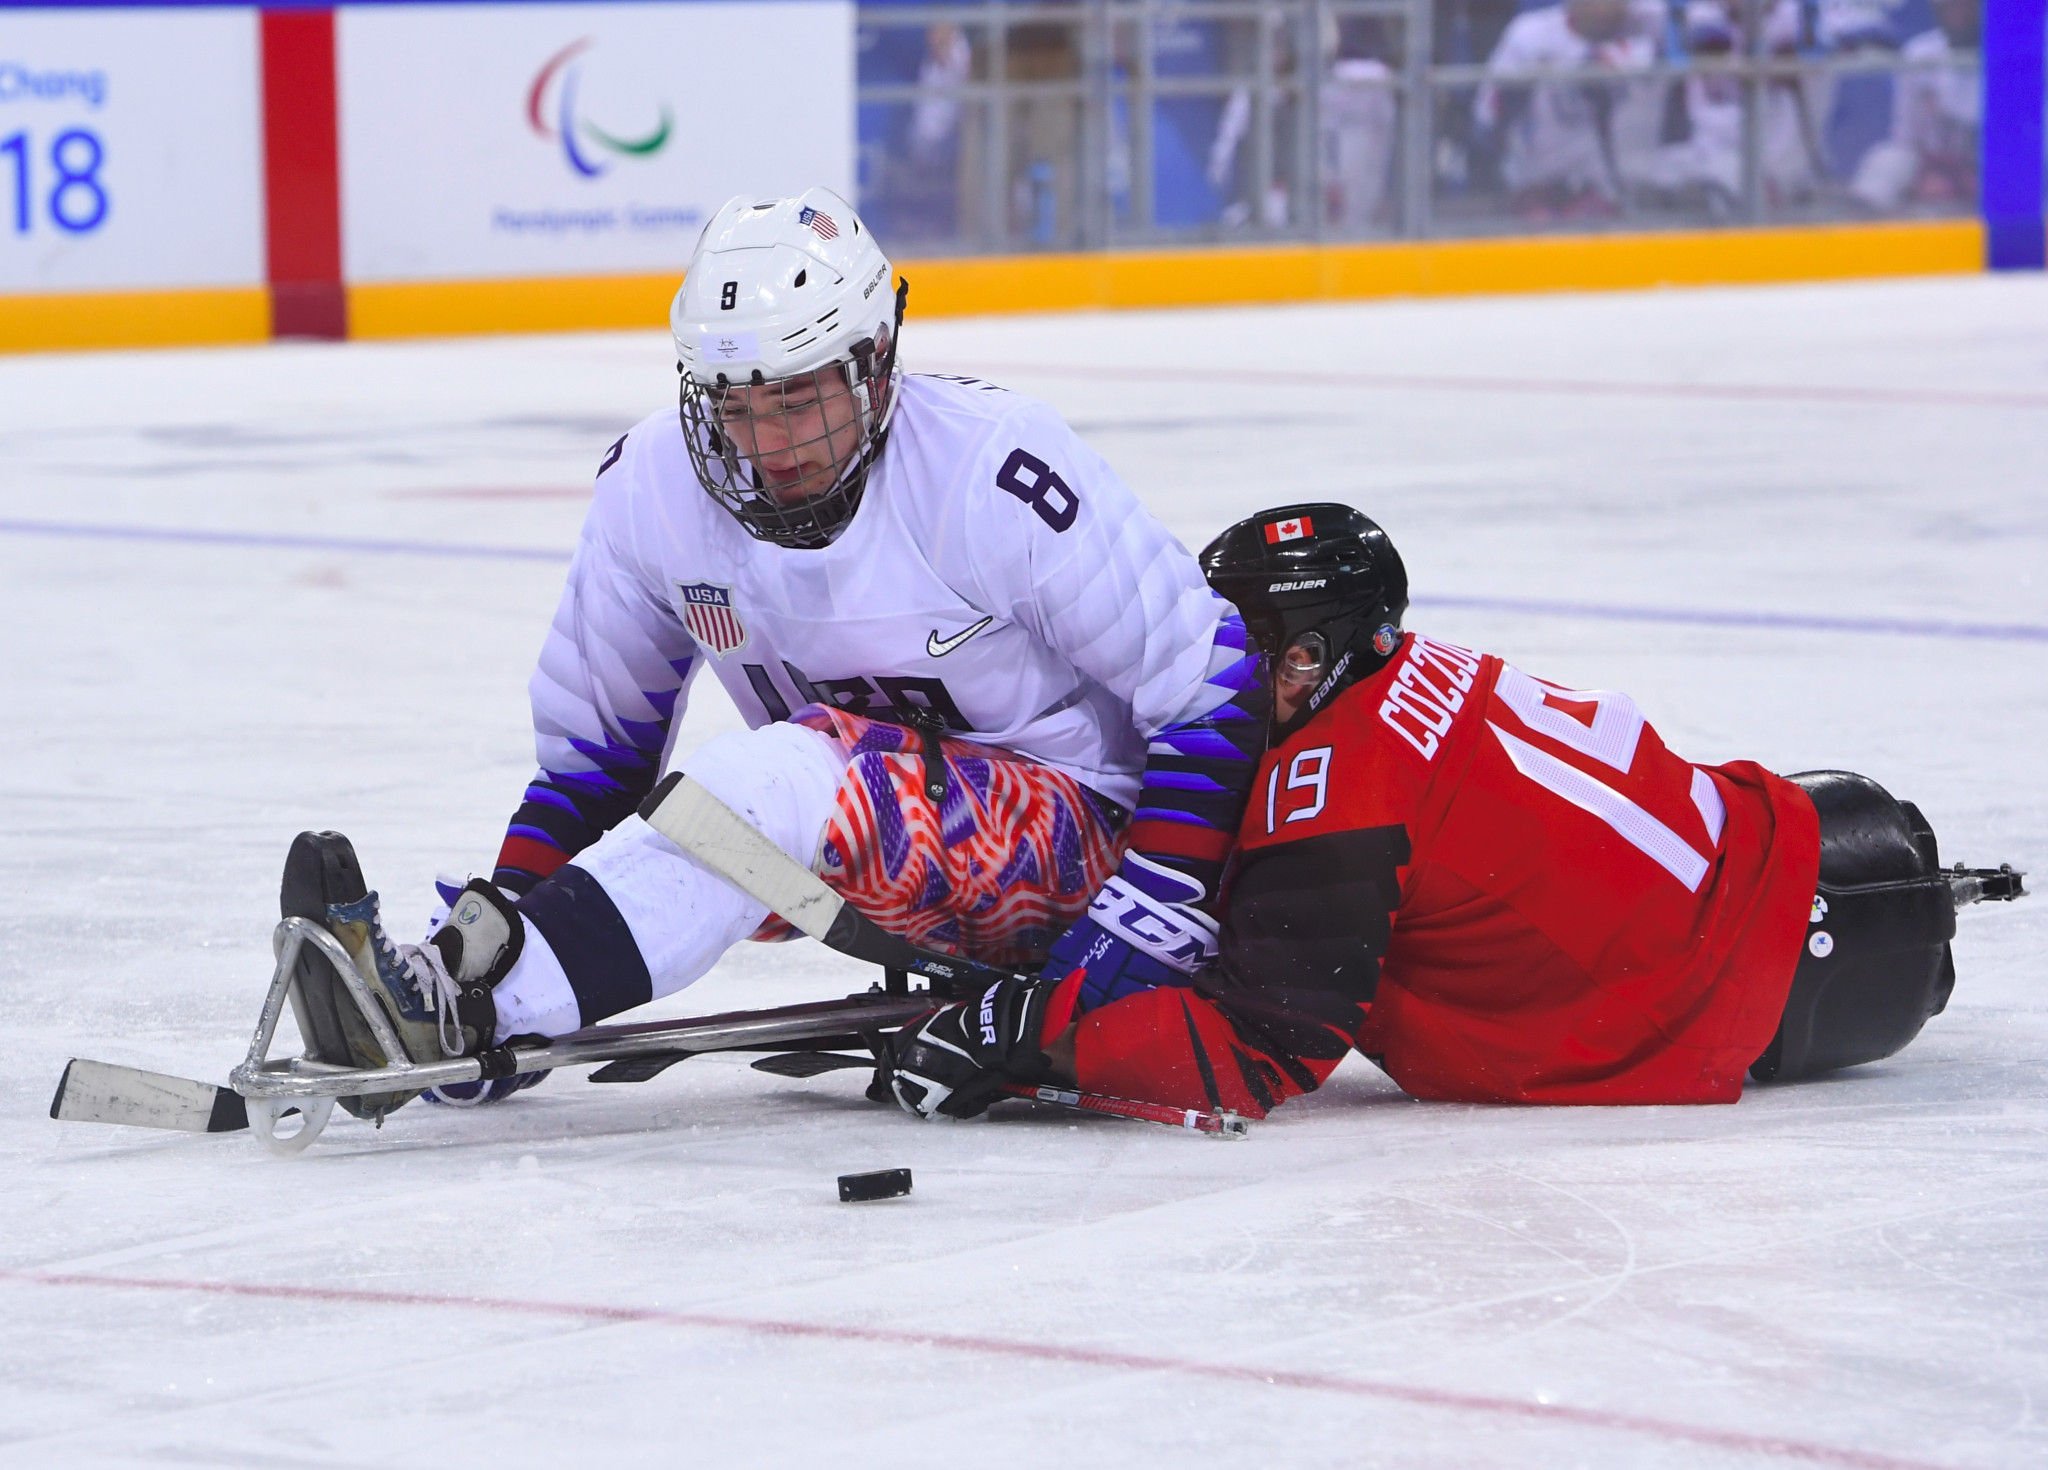 Paralympic sled hockey champion Wallace sets sights on Tokyo 2020 Para-canoe place